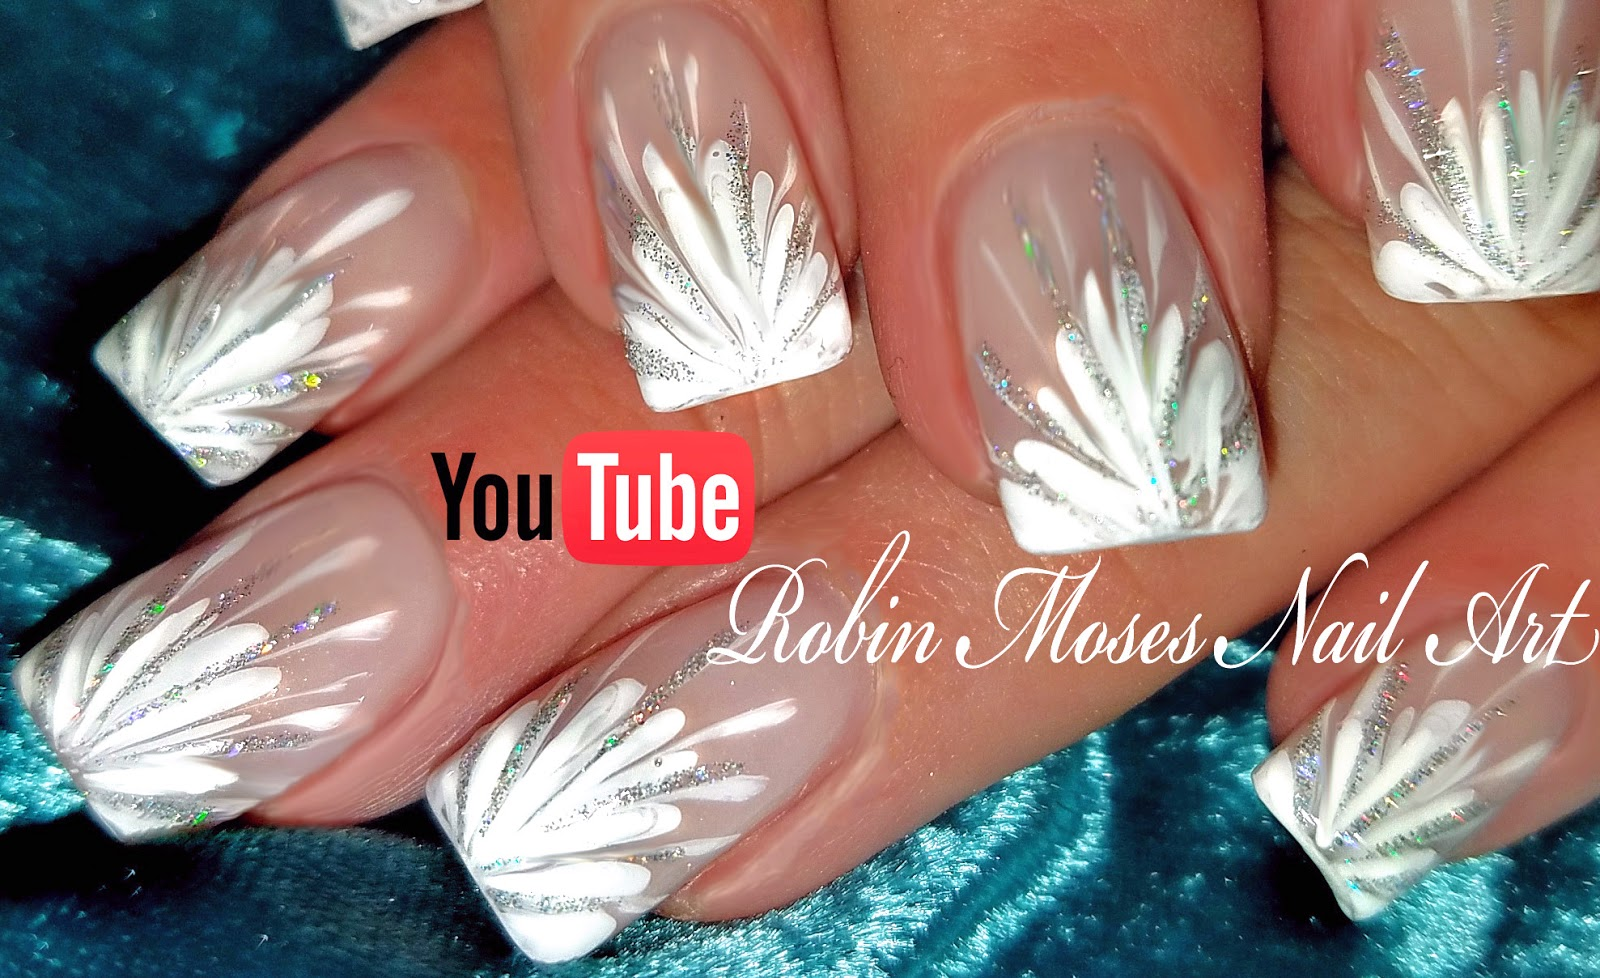 Robin Moses Nail Art Brushes For Sale Tecstar